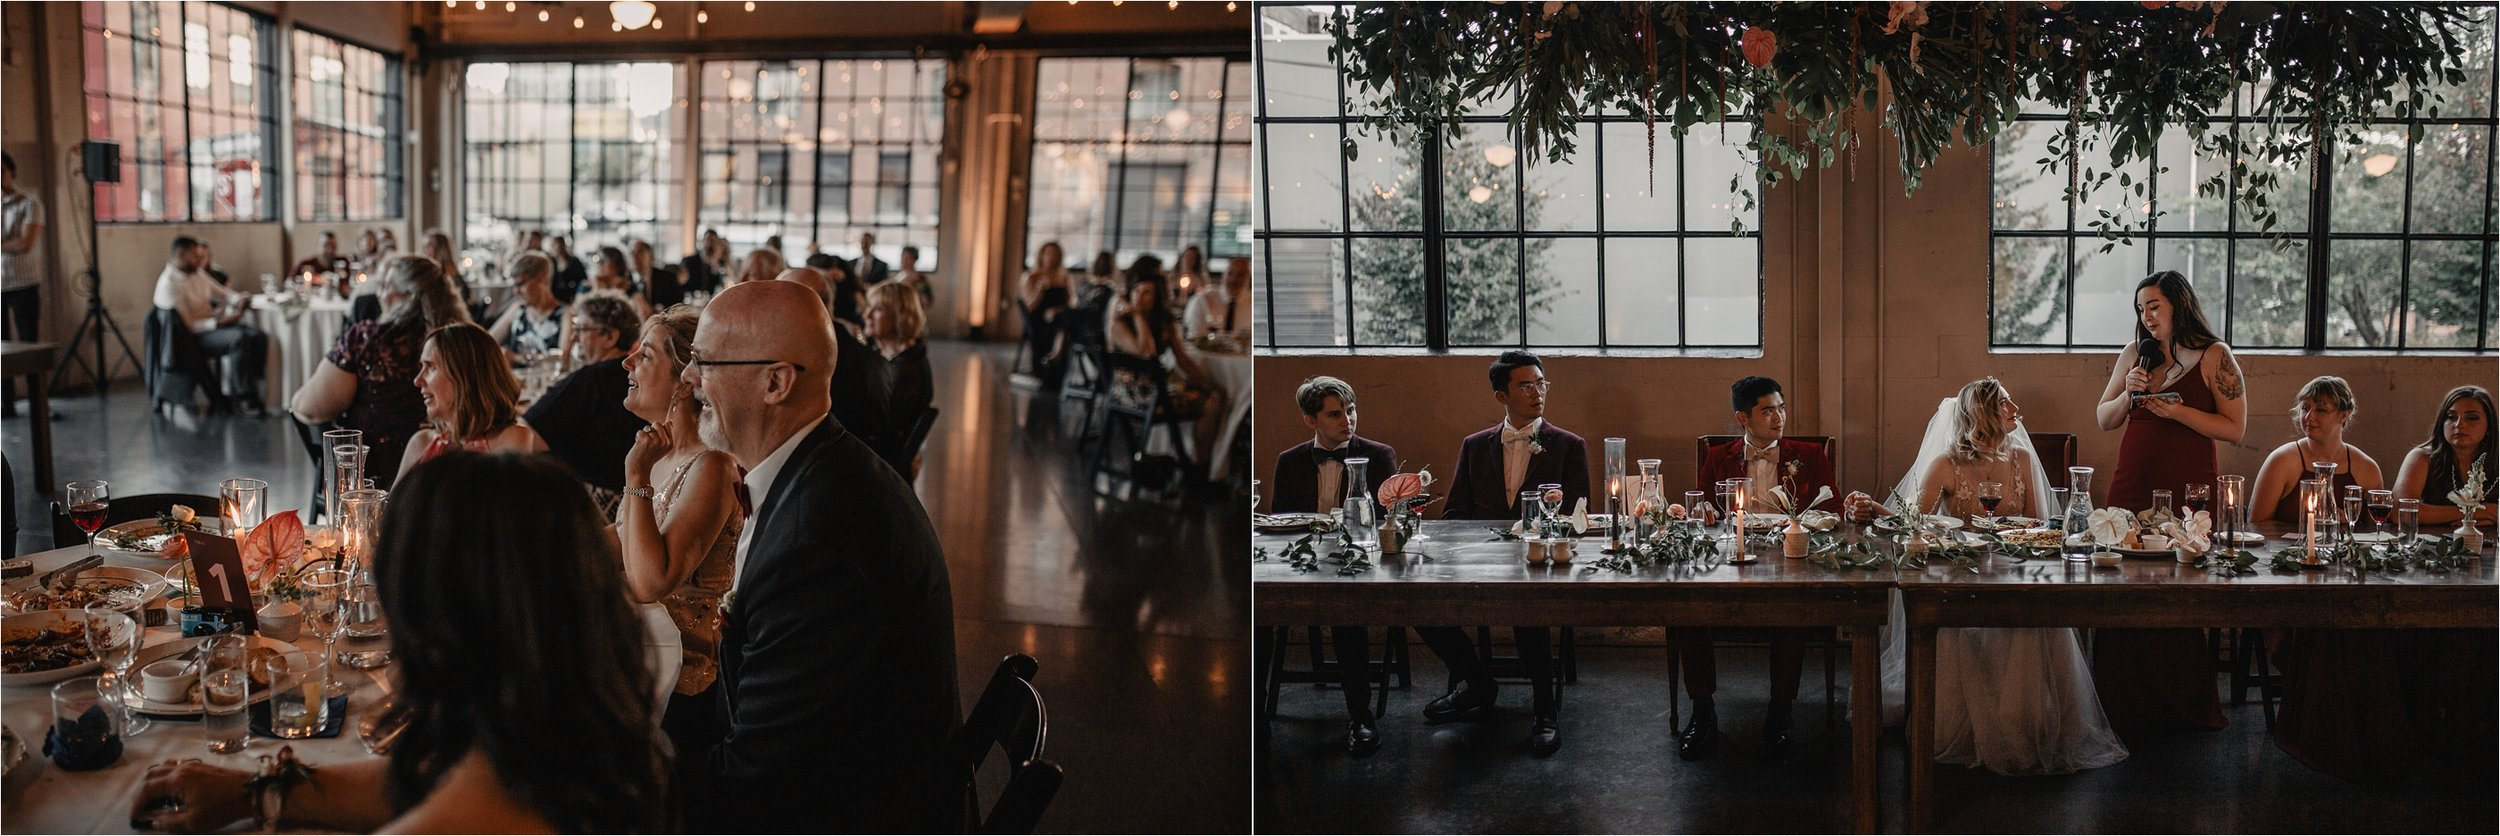 modernized-vintage-wedding-portland-city_0117.jpg